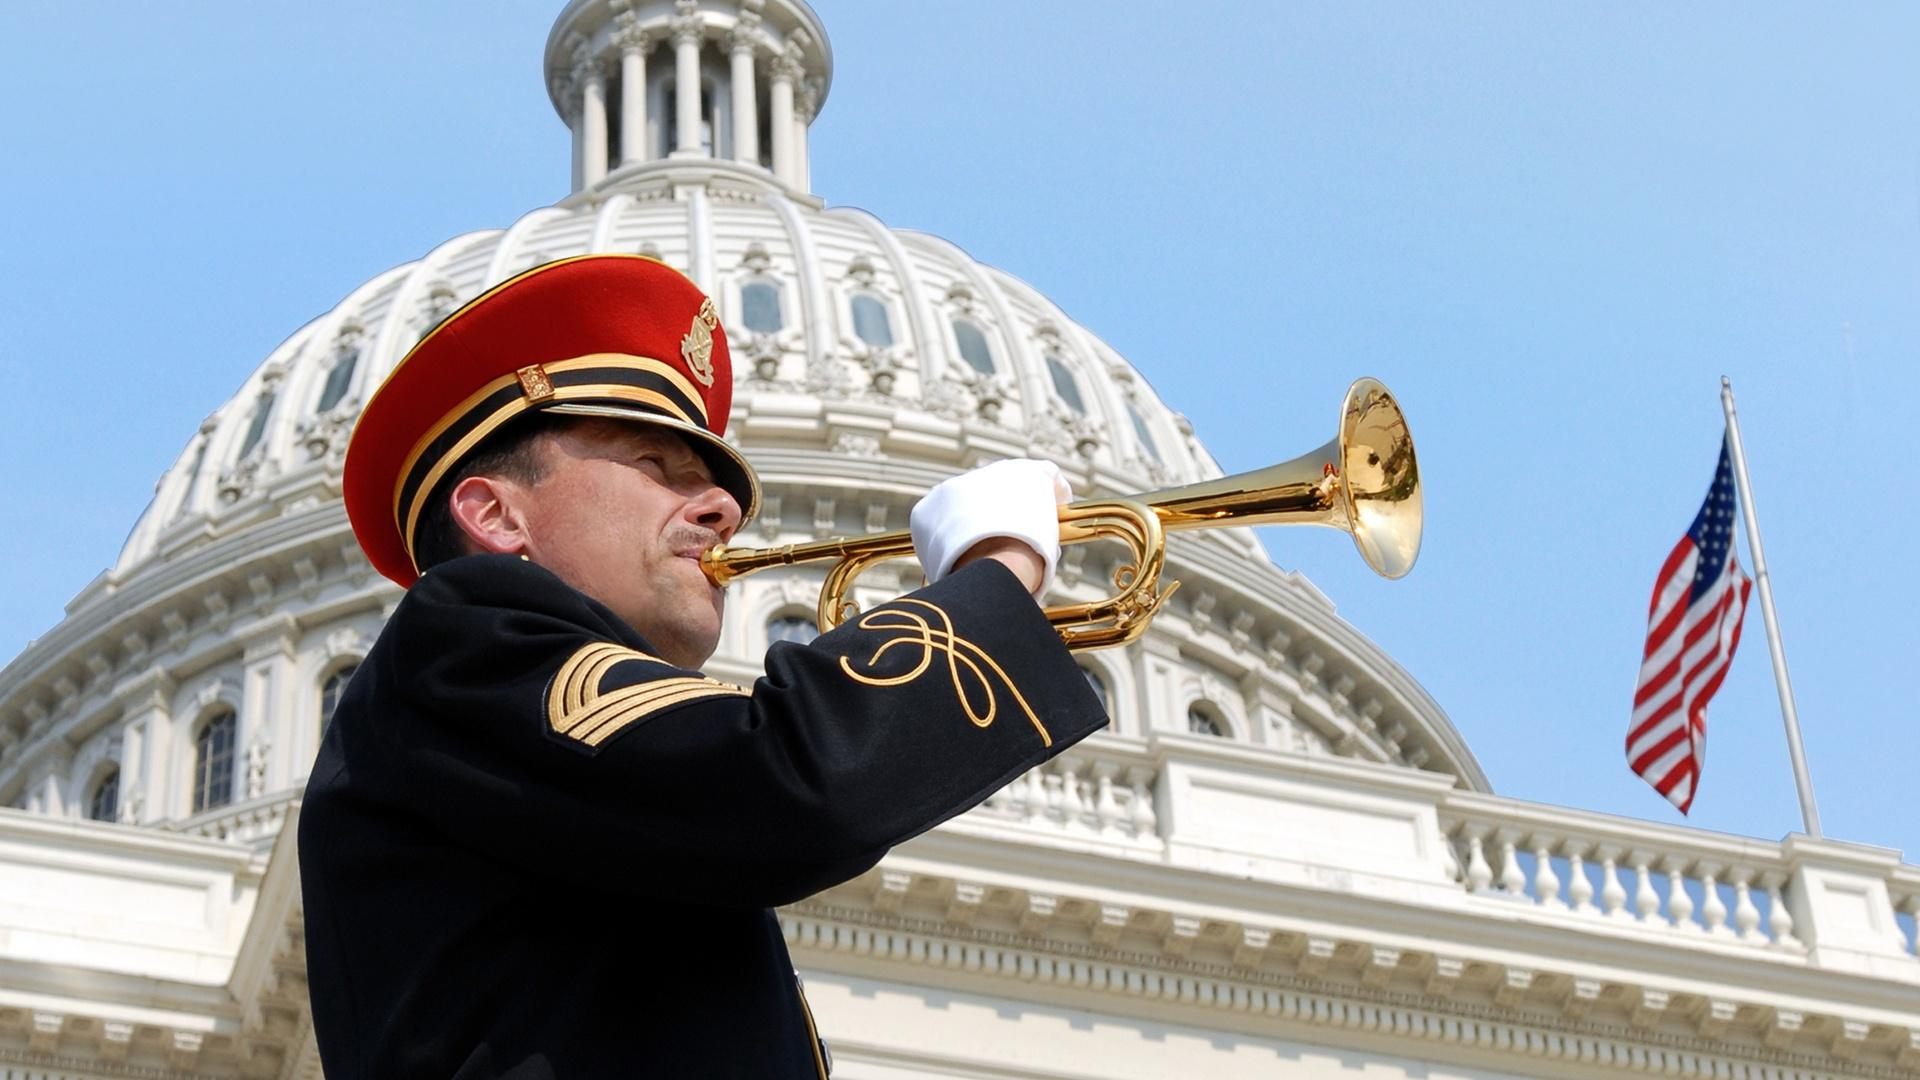 National Memorial Day Concert - Sun., May 24 at 7 p.m. and 8:30 p.m.